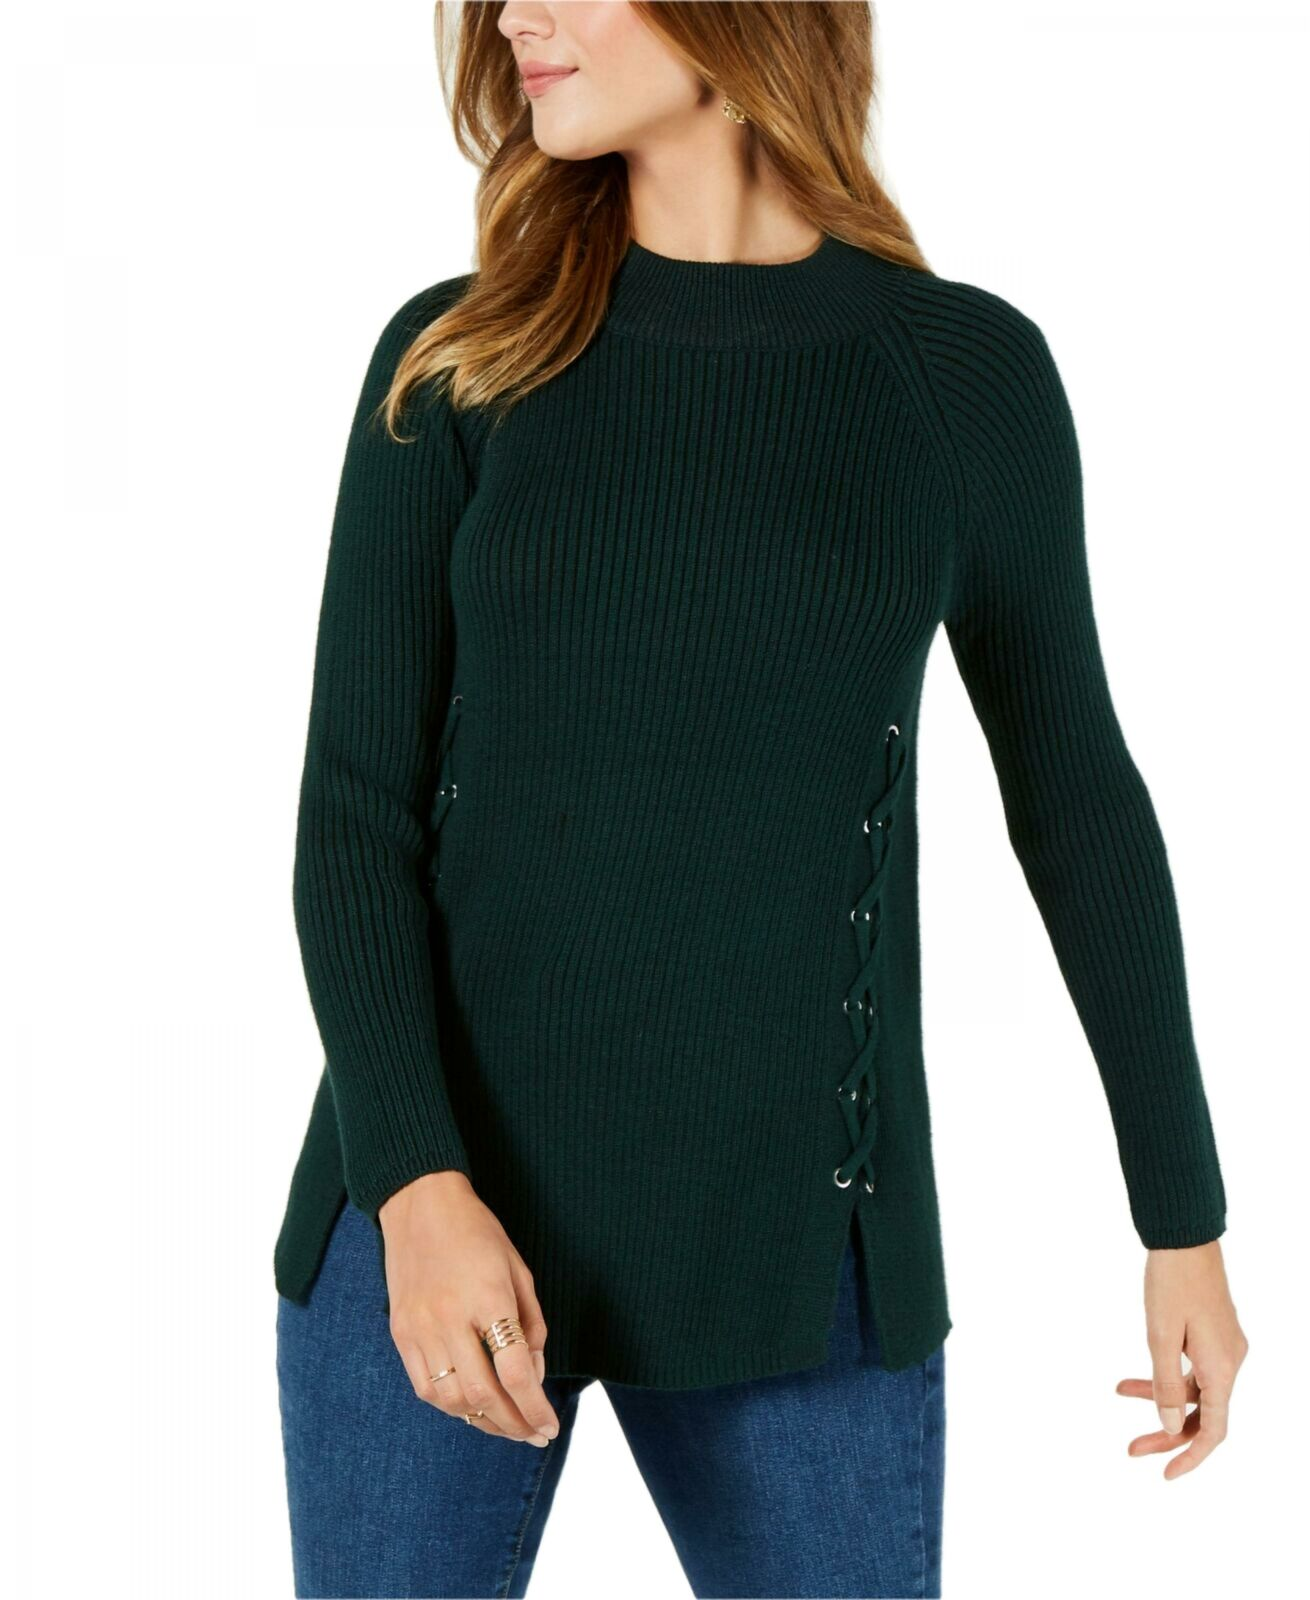 Details about NWT Style & Co Womens Lace Up Mock Turtleneck Sweater. 100028287MS